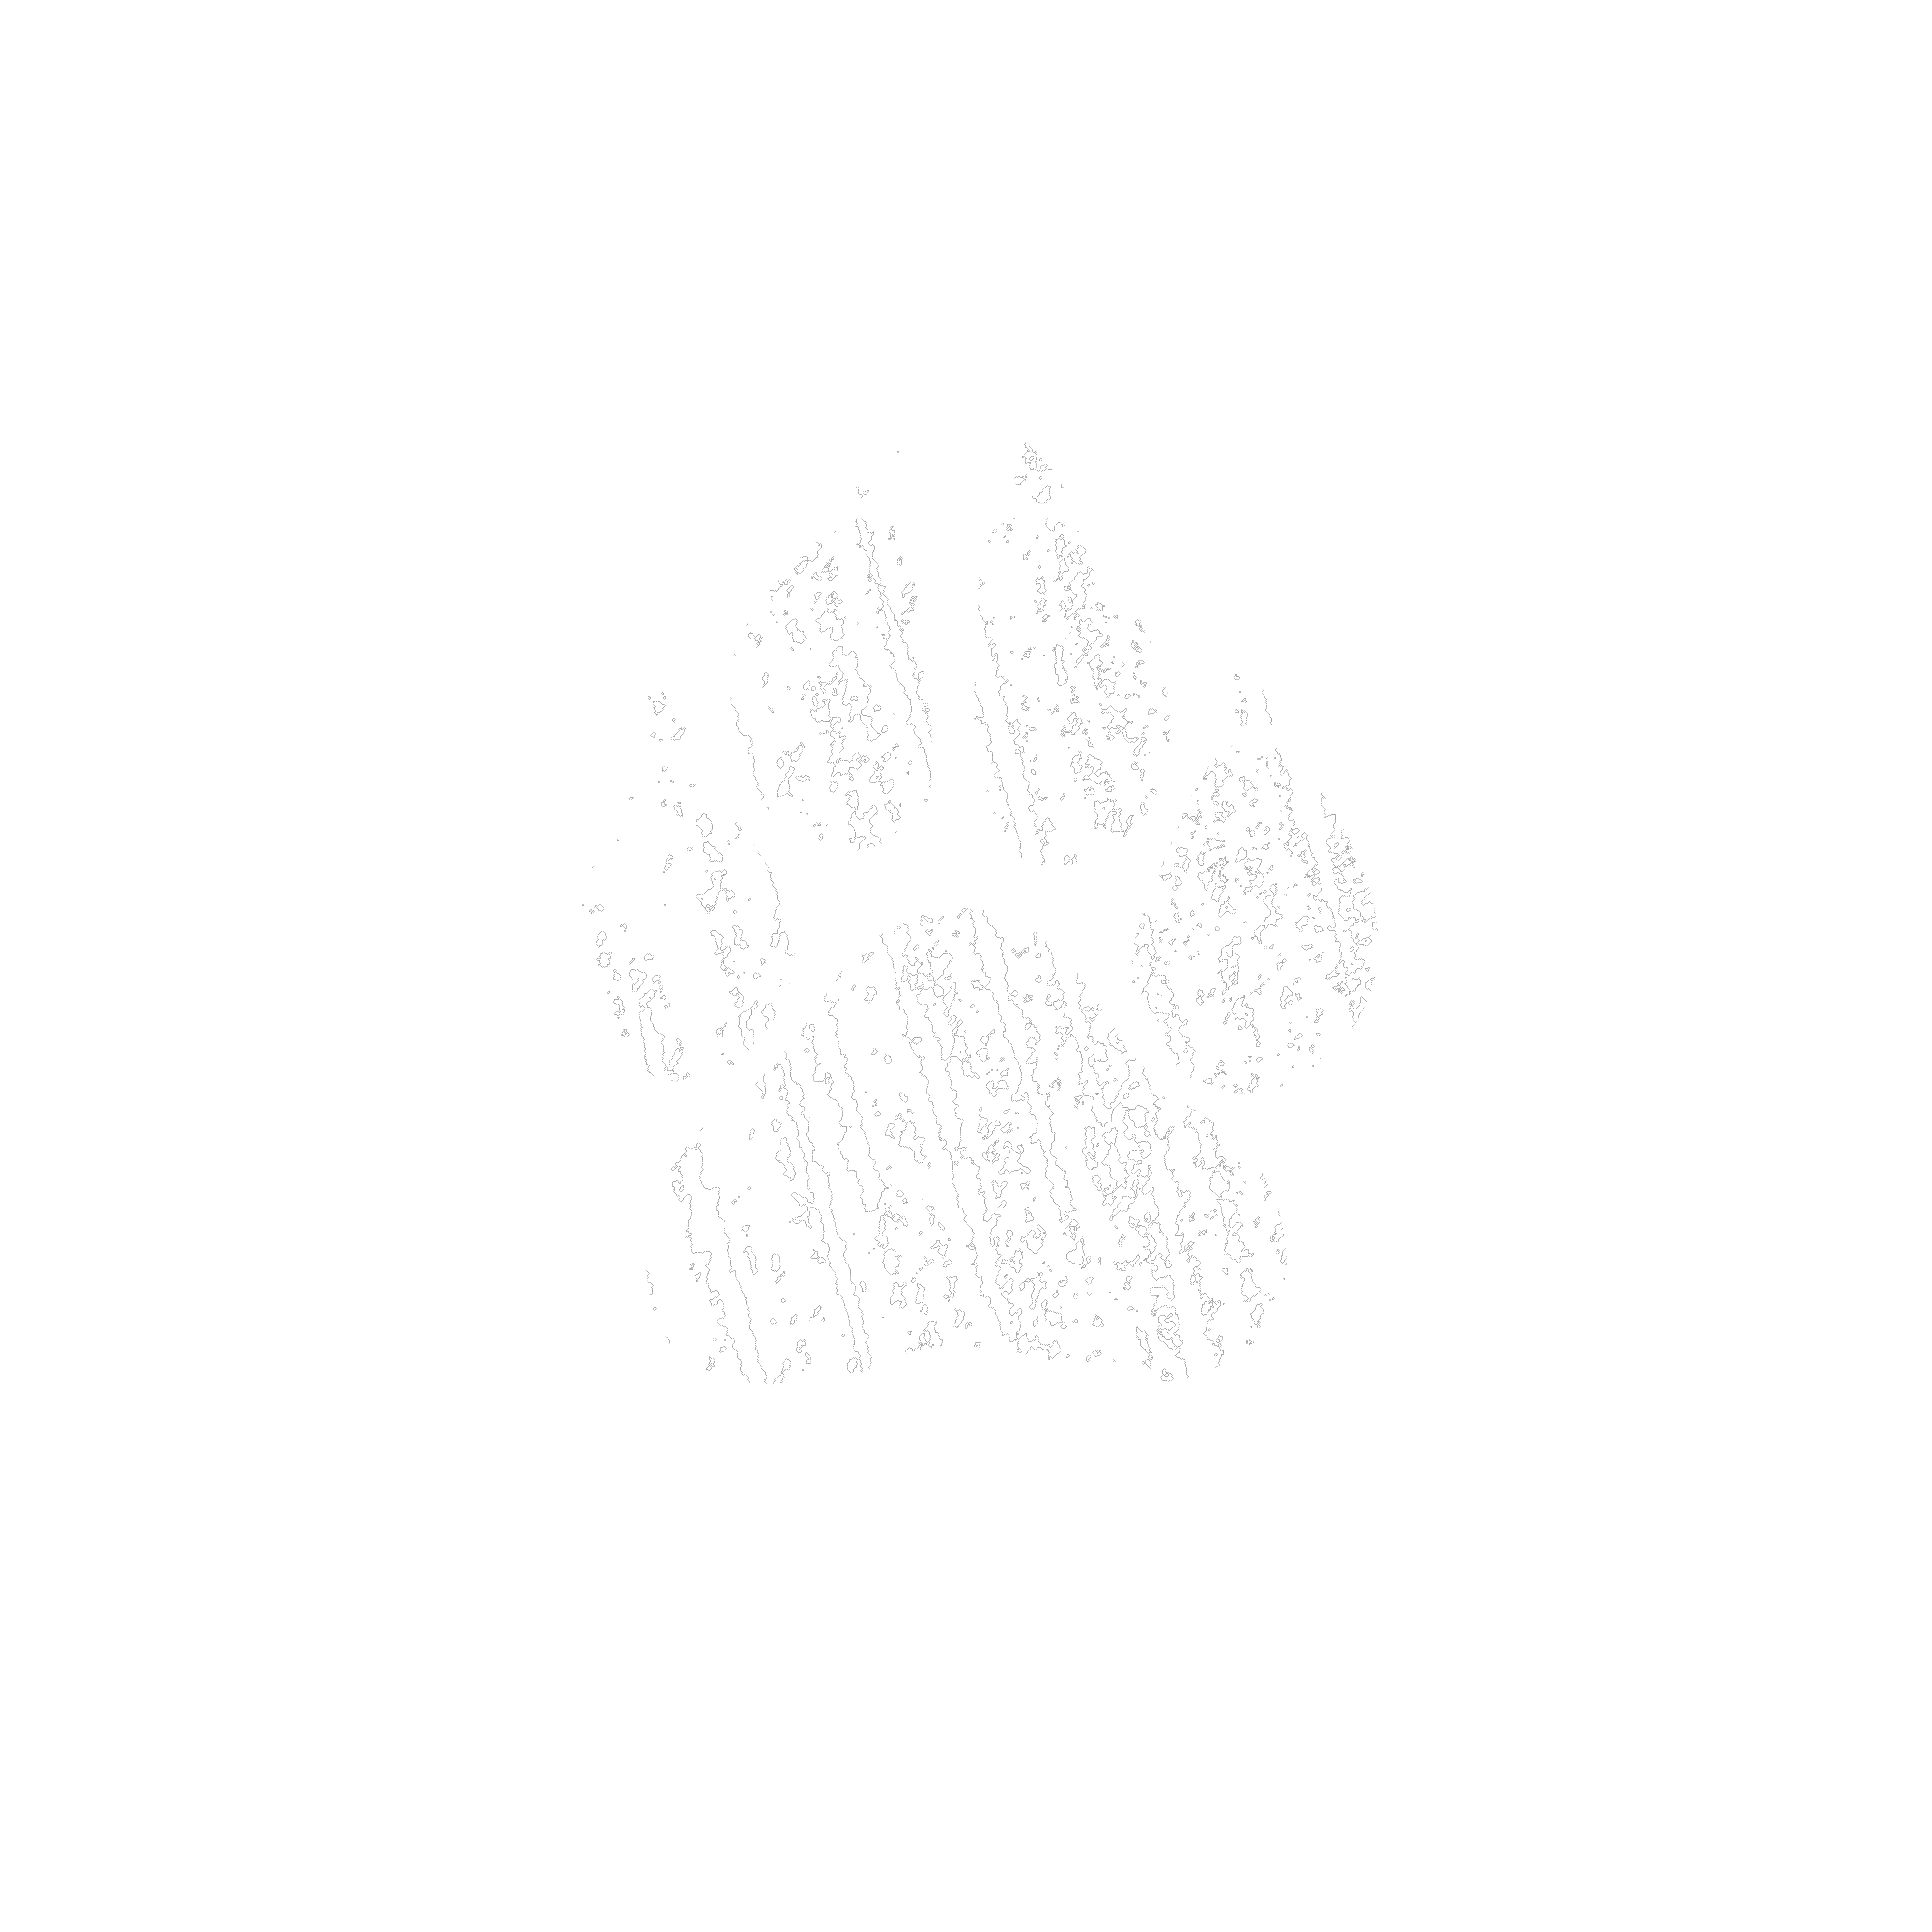 Bear Dog Bicycles